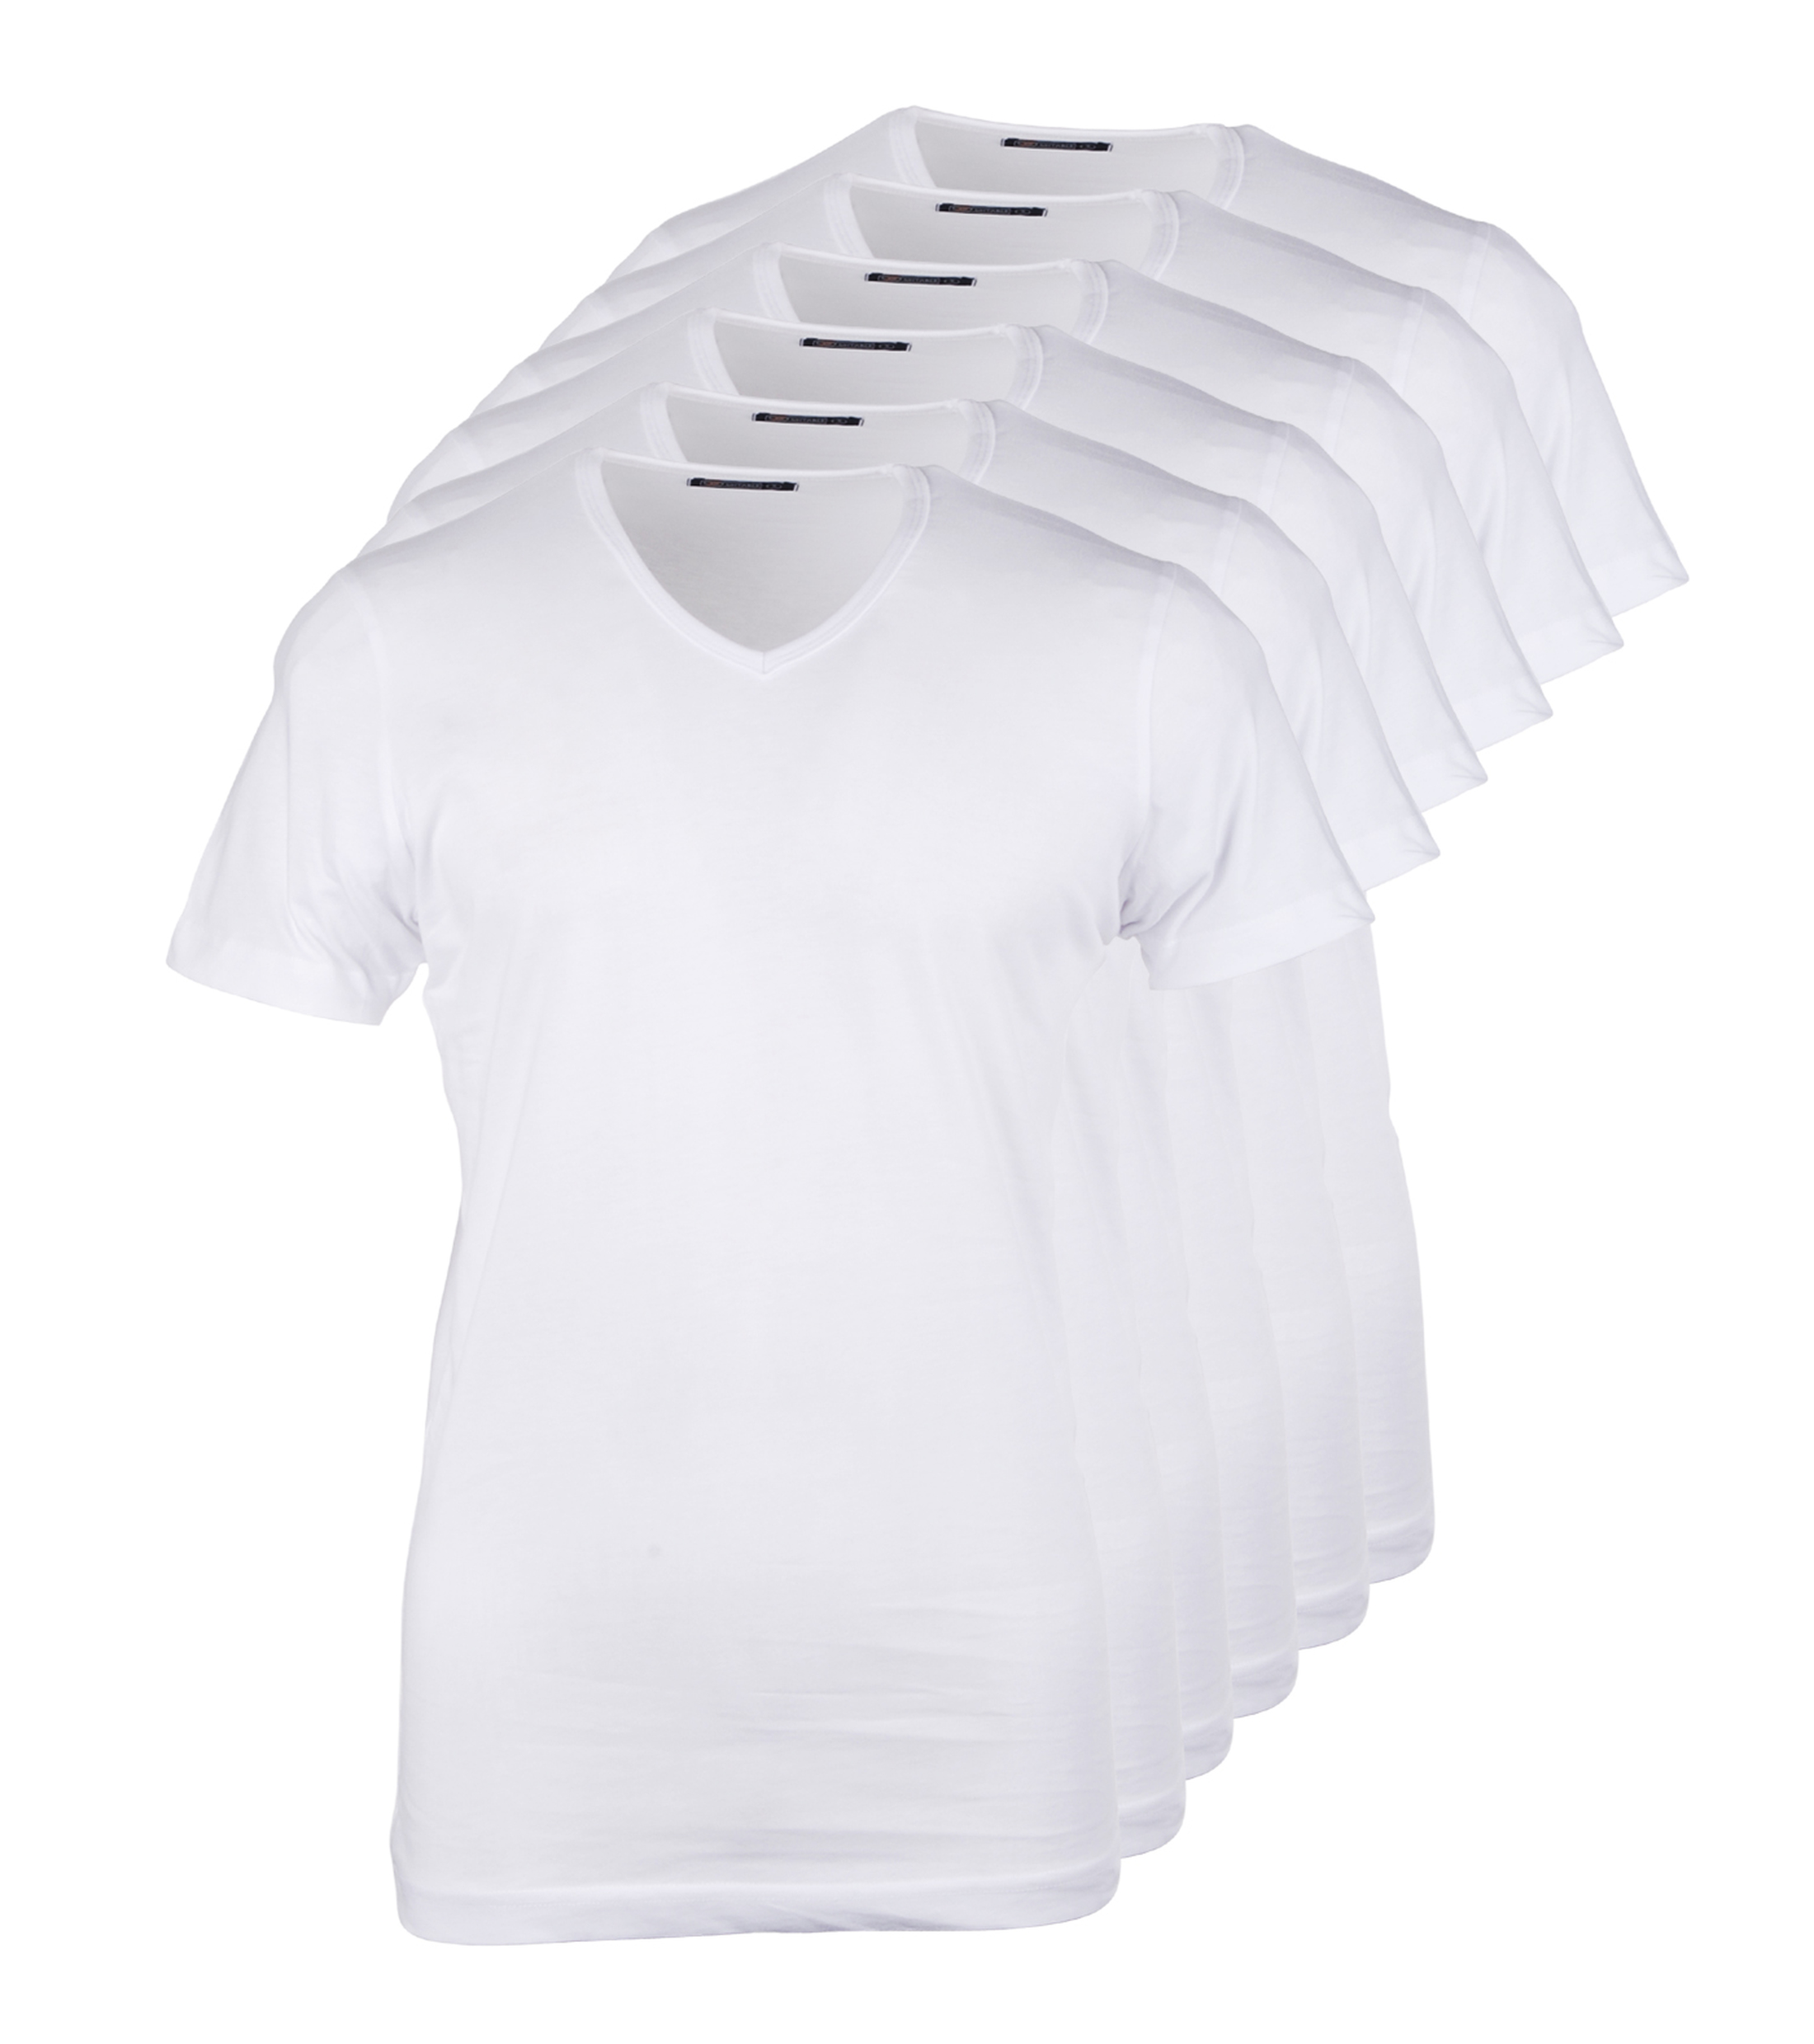 Wit t shirt 6pack v neck for Designhotel maastricht comfort xl